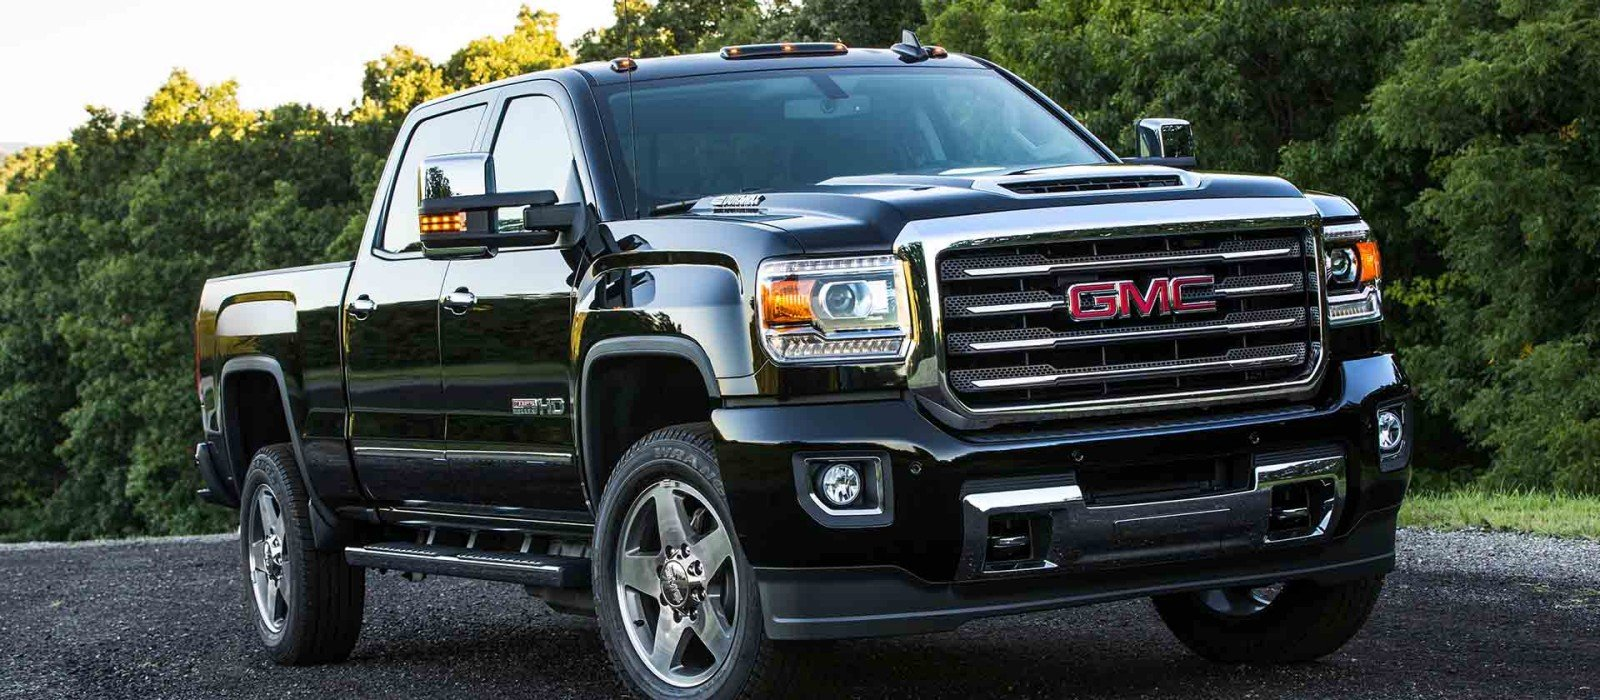 Malouf Buick GMC is a North Brunswick Township Buick  GMC dealer and     New 2017 GMC Sierra 2500 Lease Offers   Incentives North Brunswick Township  NJ